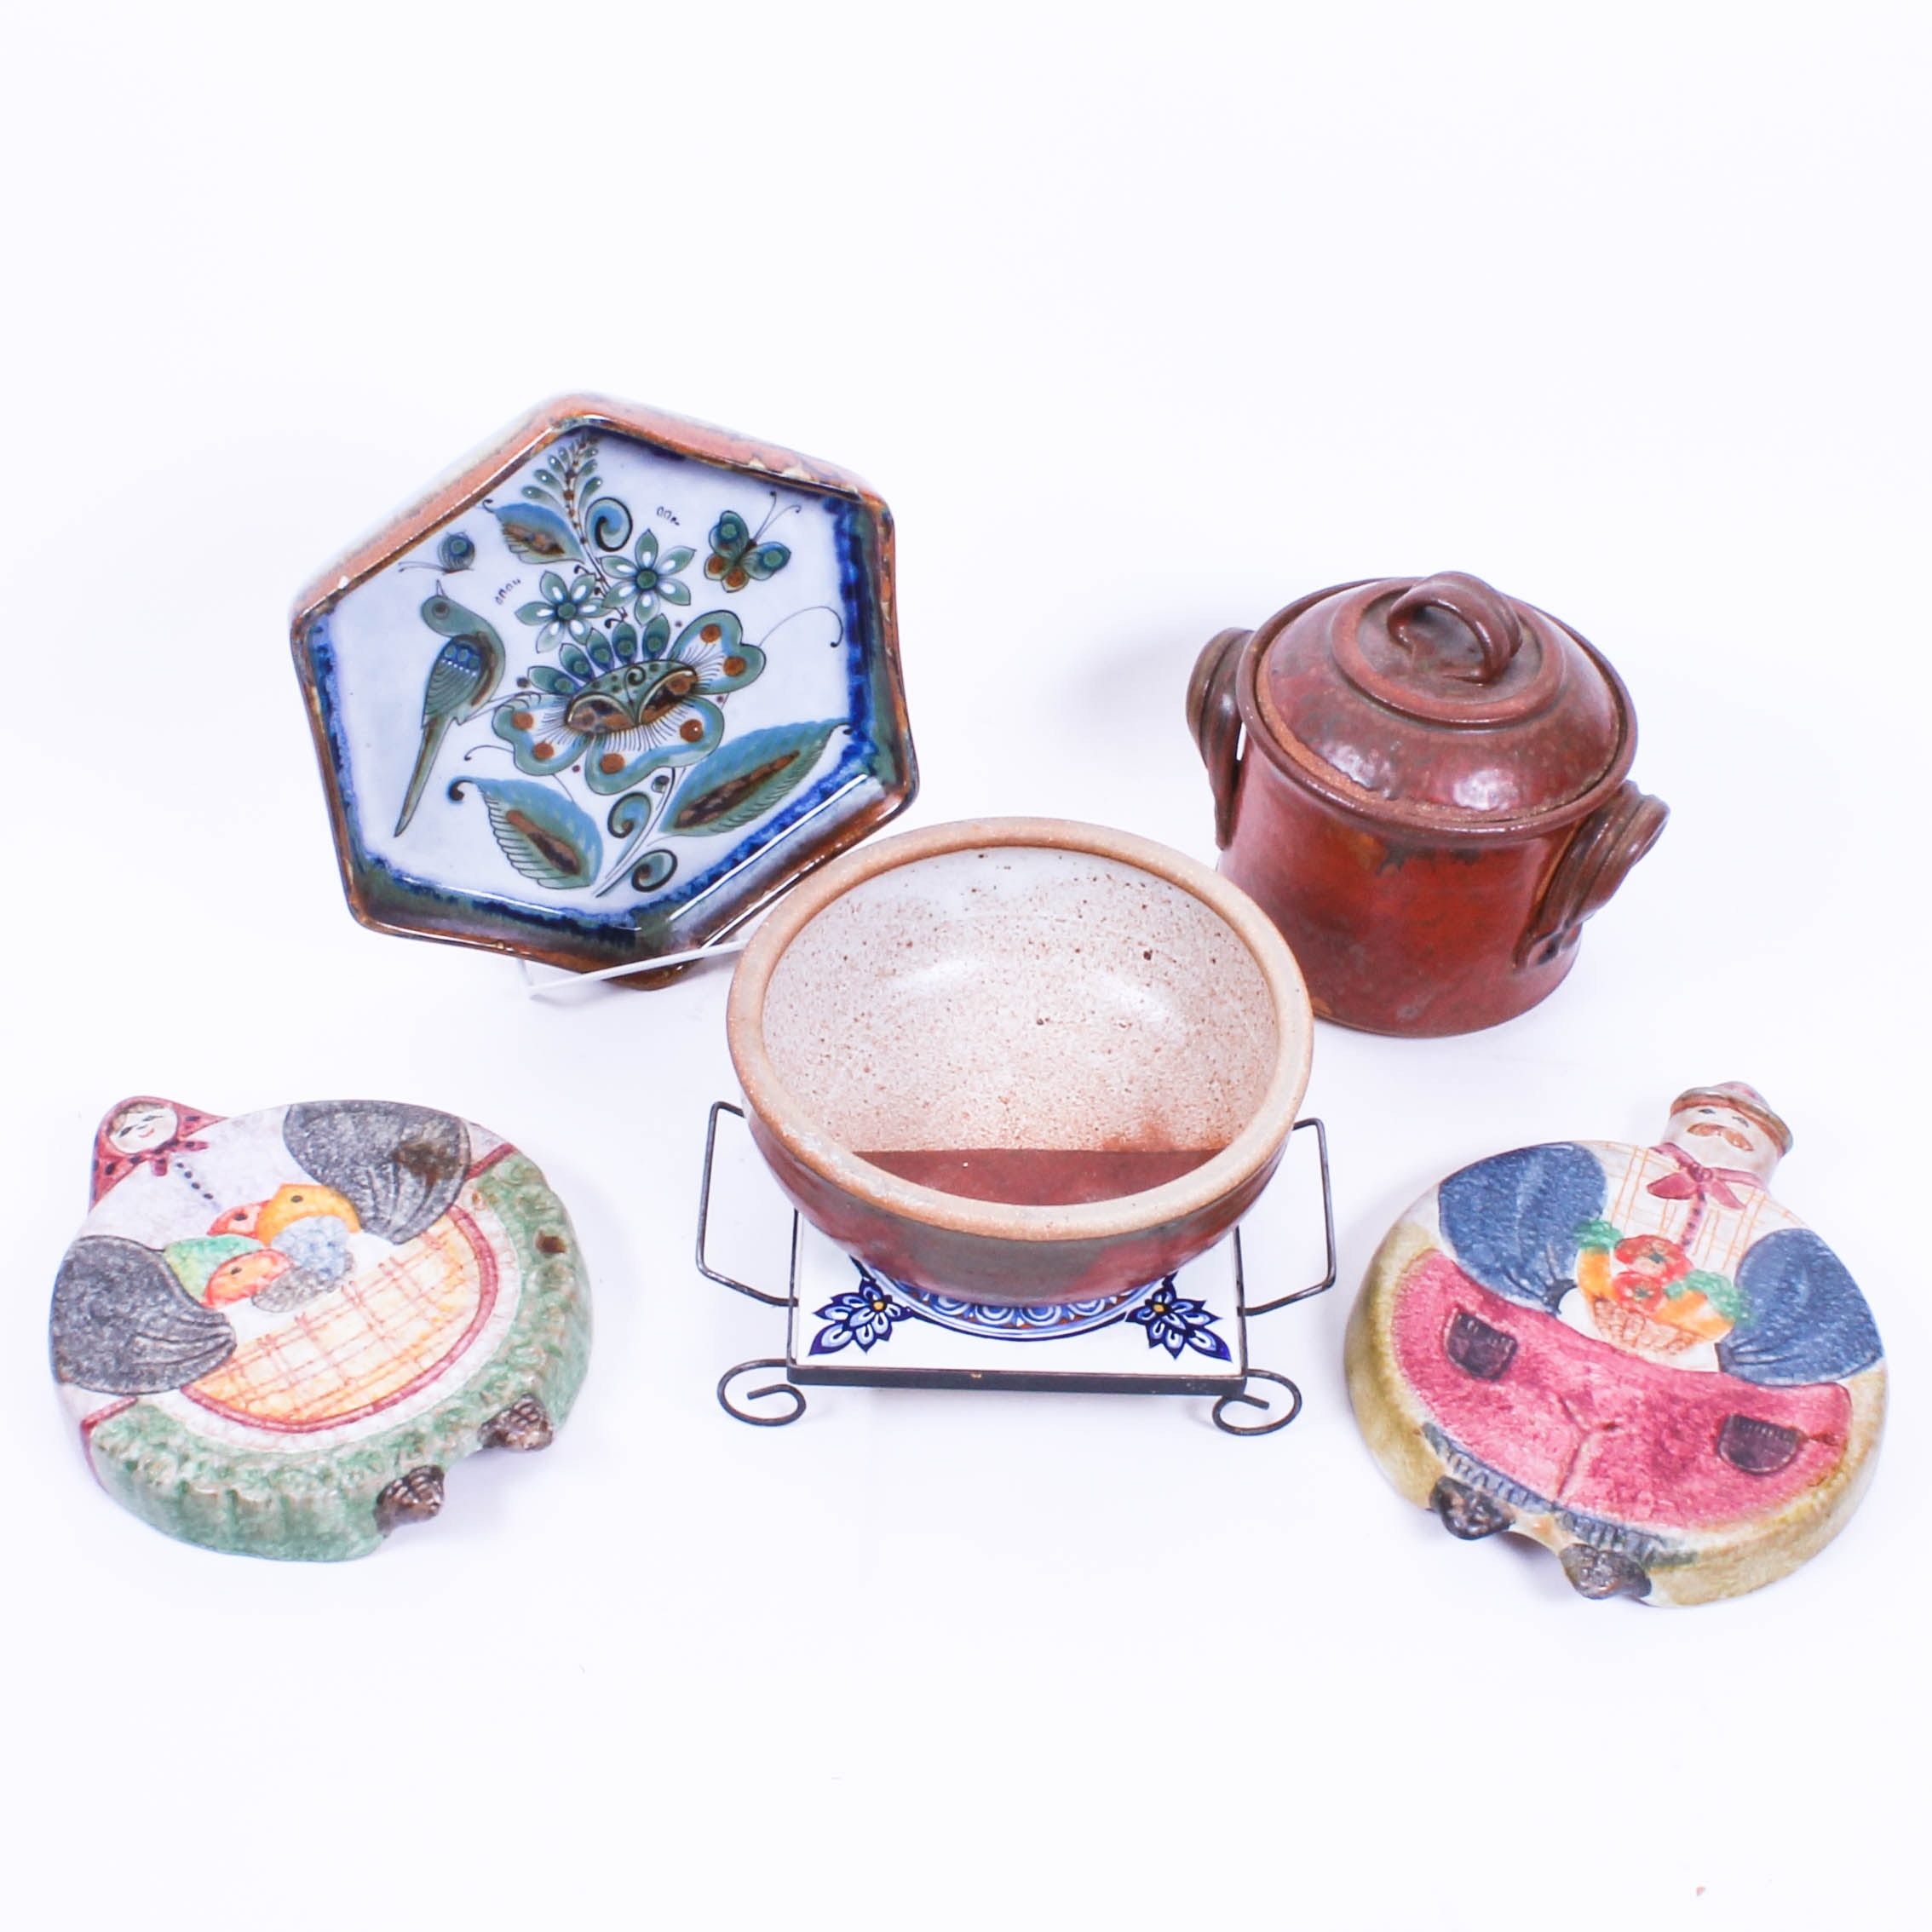 Kitchen Stoneware and Ceramic Assortment